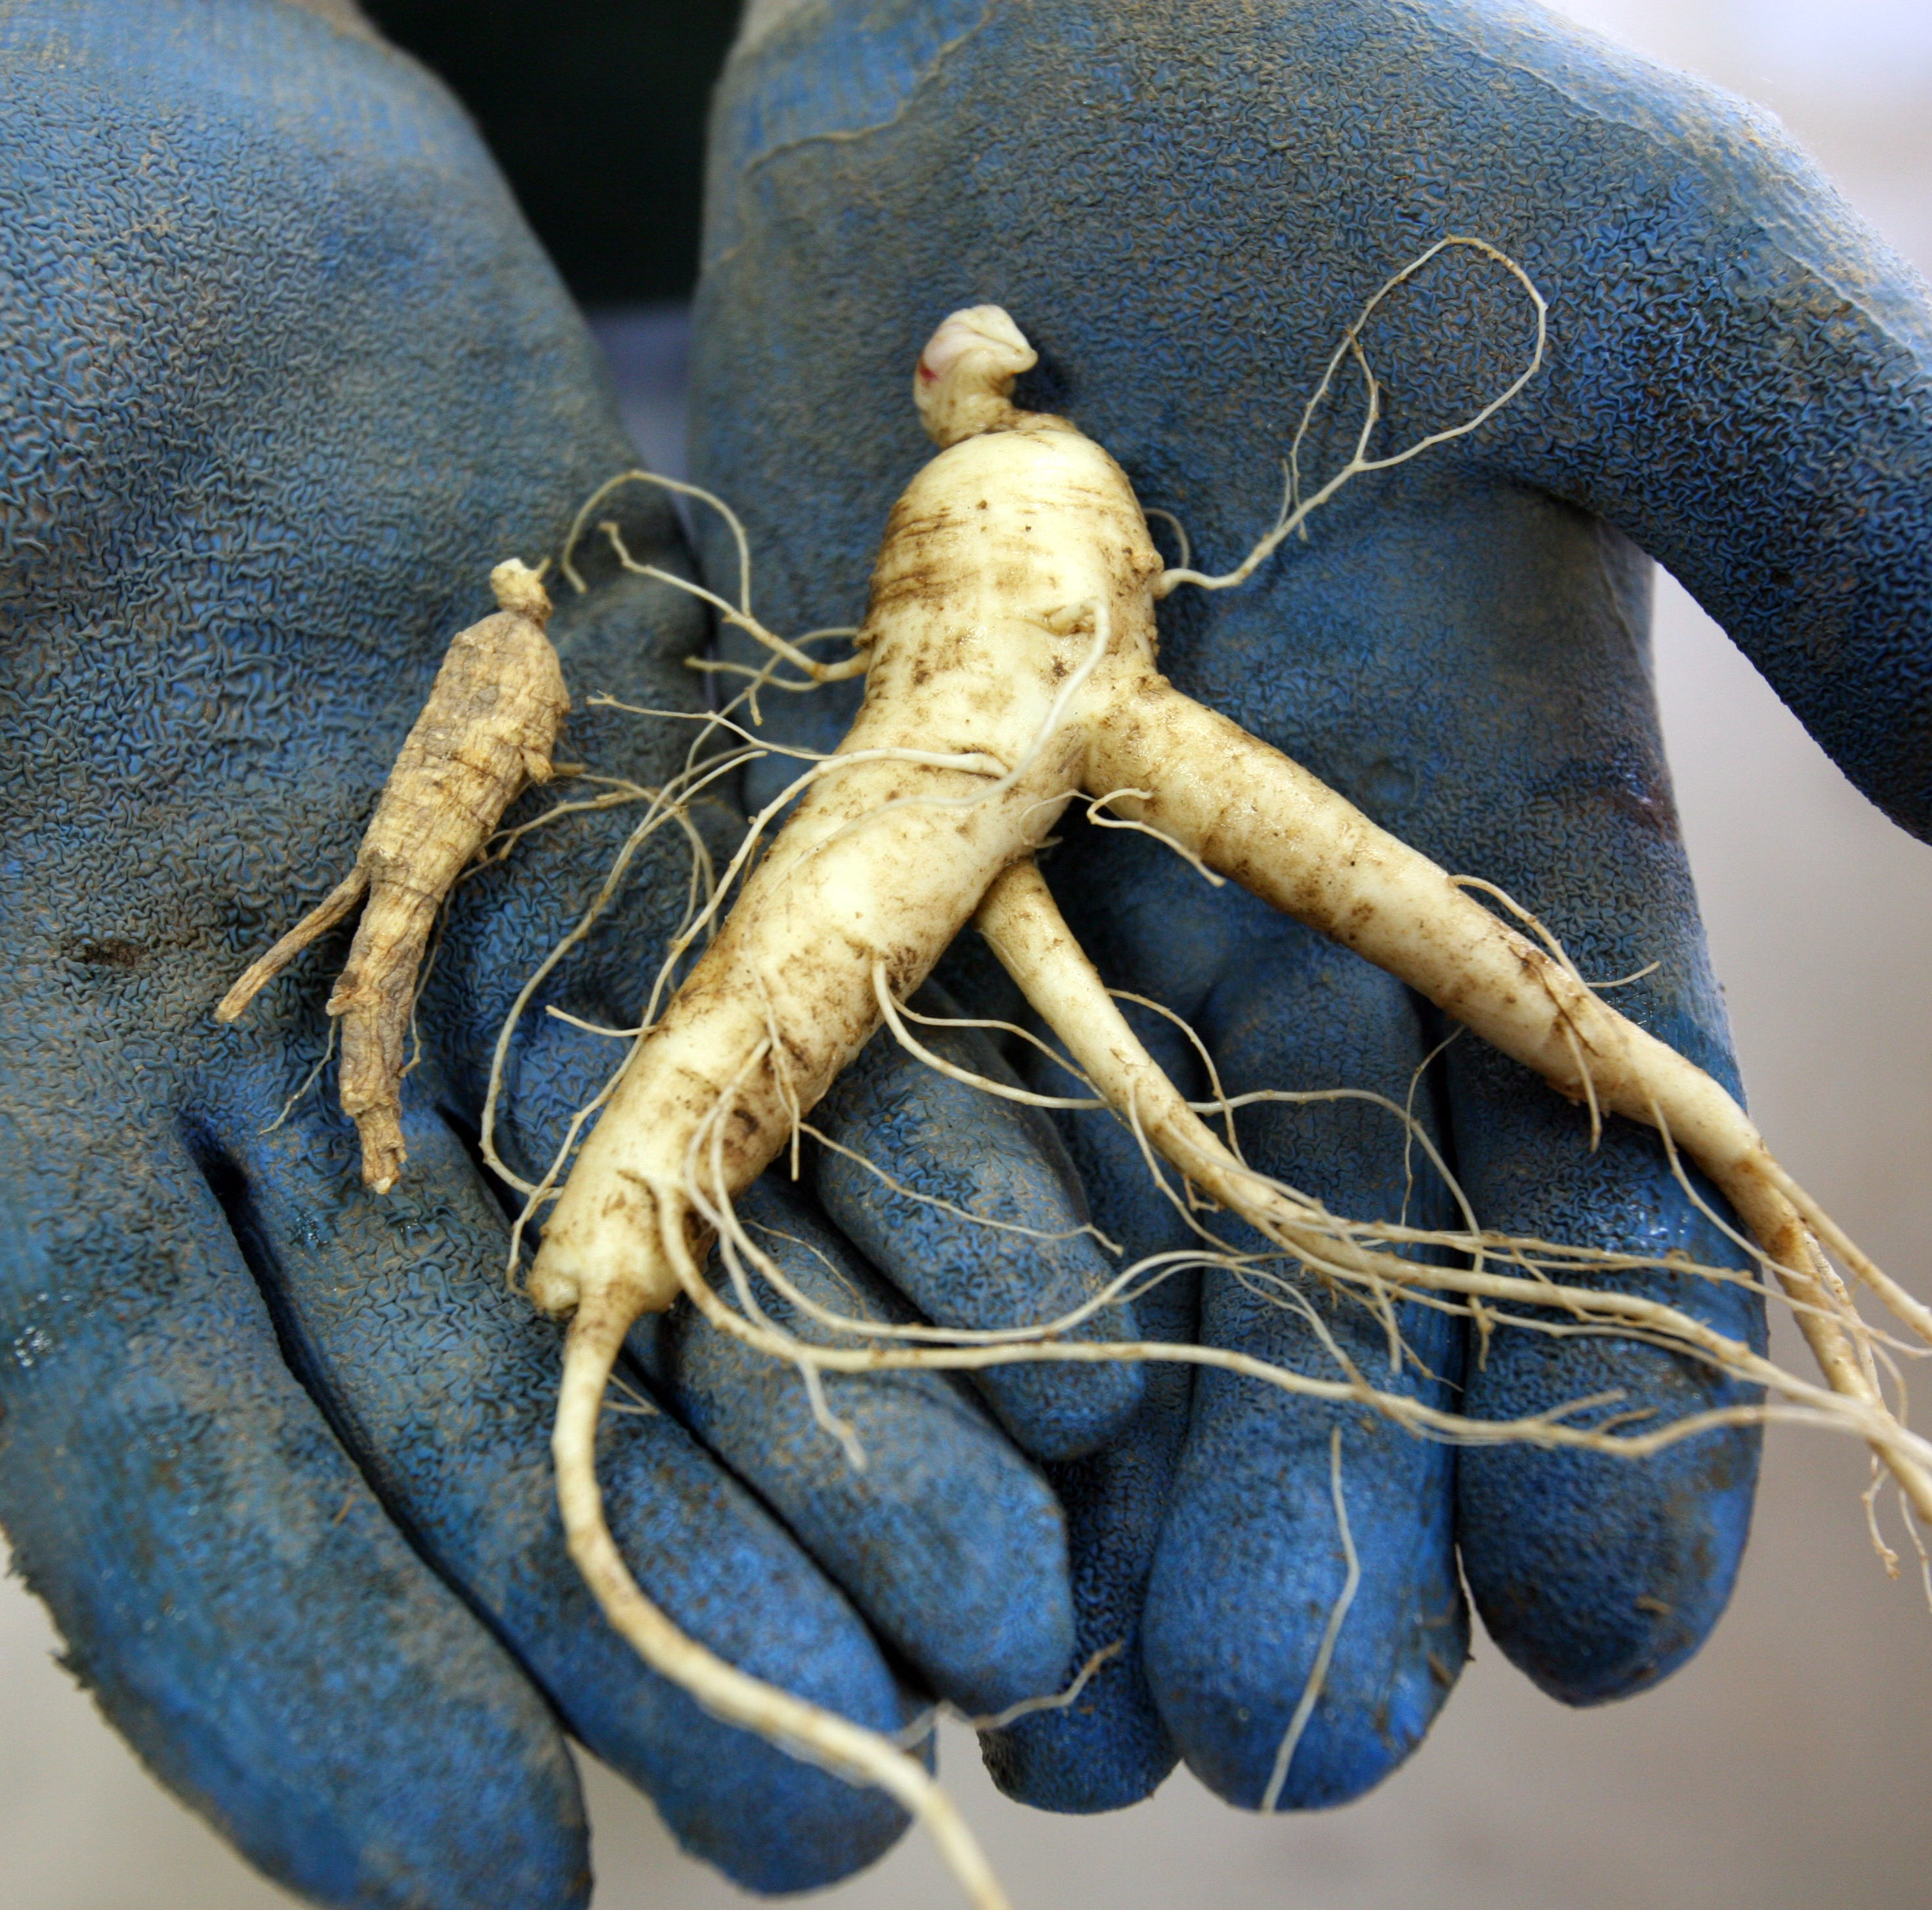 Yodel, dig ginseng, stomp grapes, and more to do around Wisconsin this week